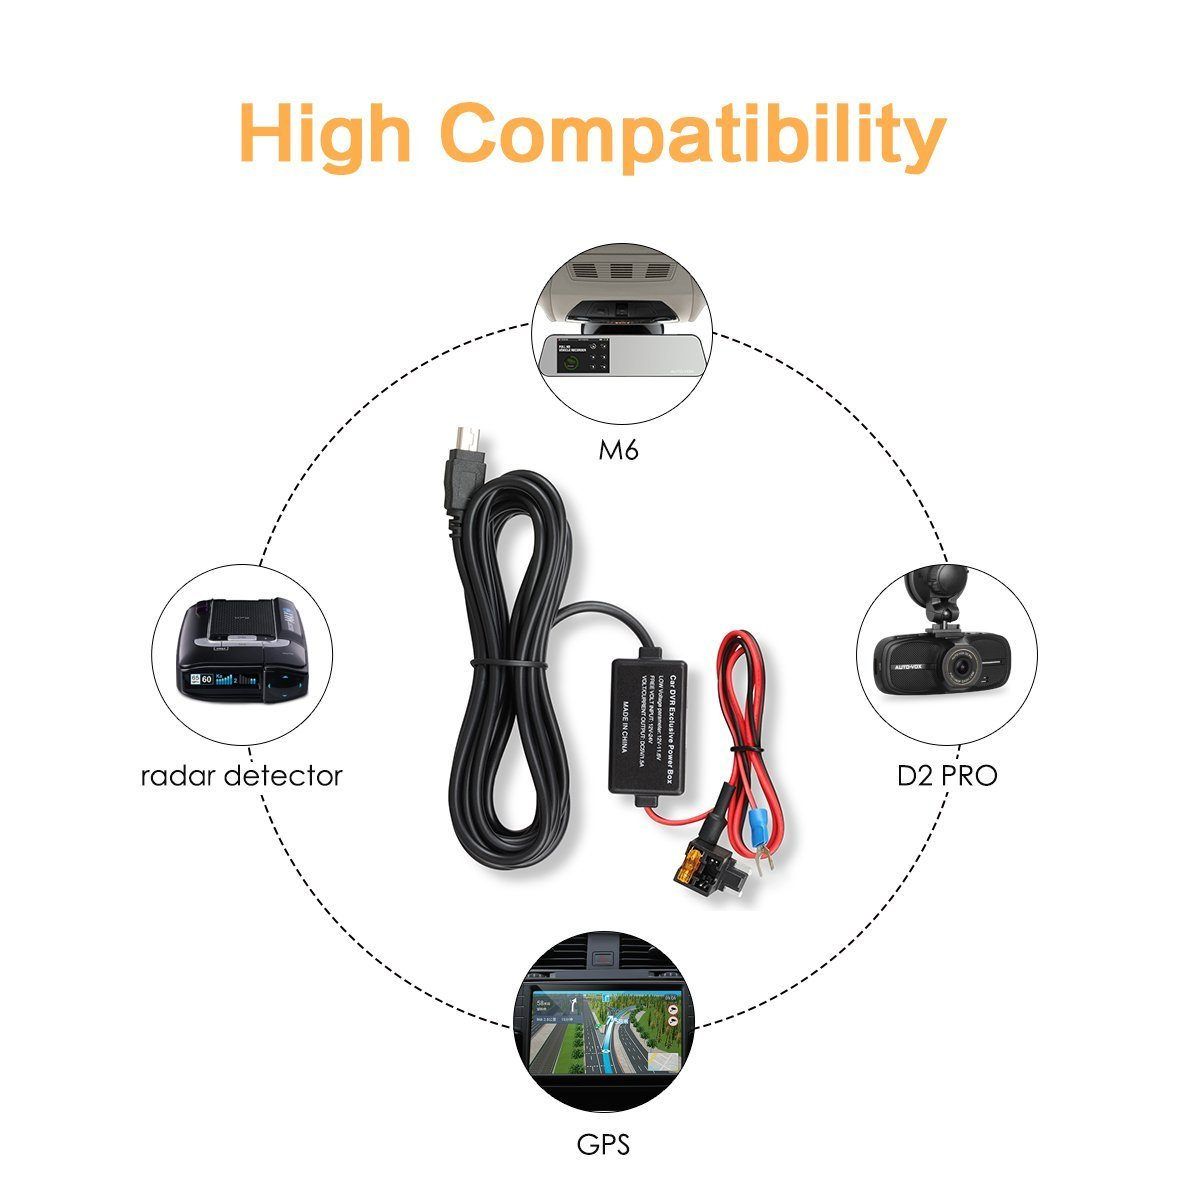 Auto Vox Dash Cam Hardwire Kit Lowprofile Mini Fuse 2014 Bmw M6 Box Adapter Car Charger Cable1274 Ft Compatible Ondash V1 A118 N2 G1w Gps Navigator Radar